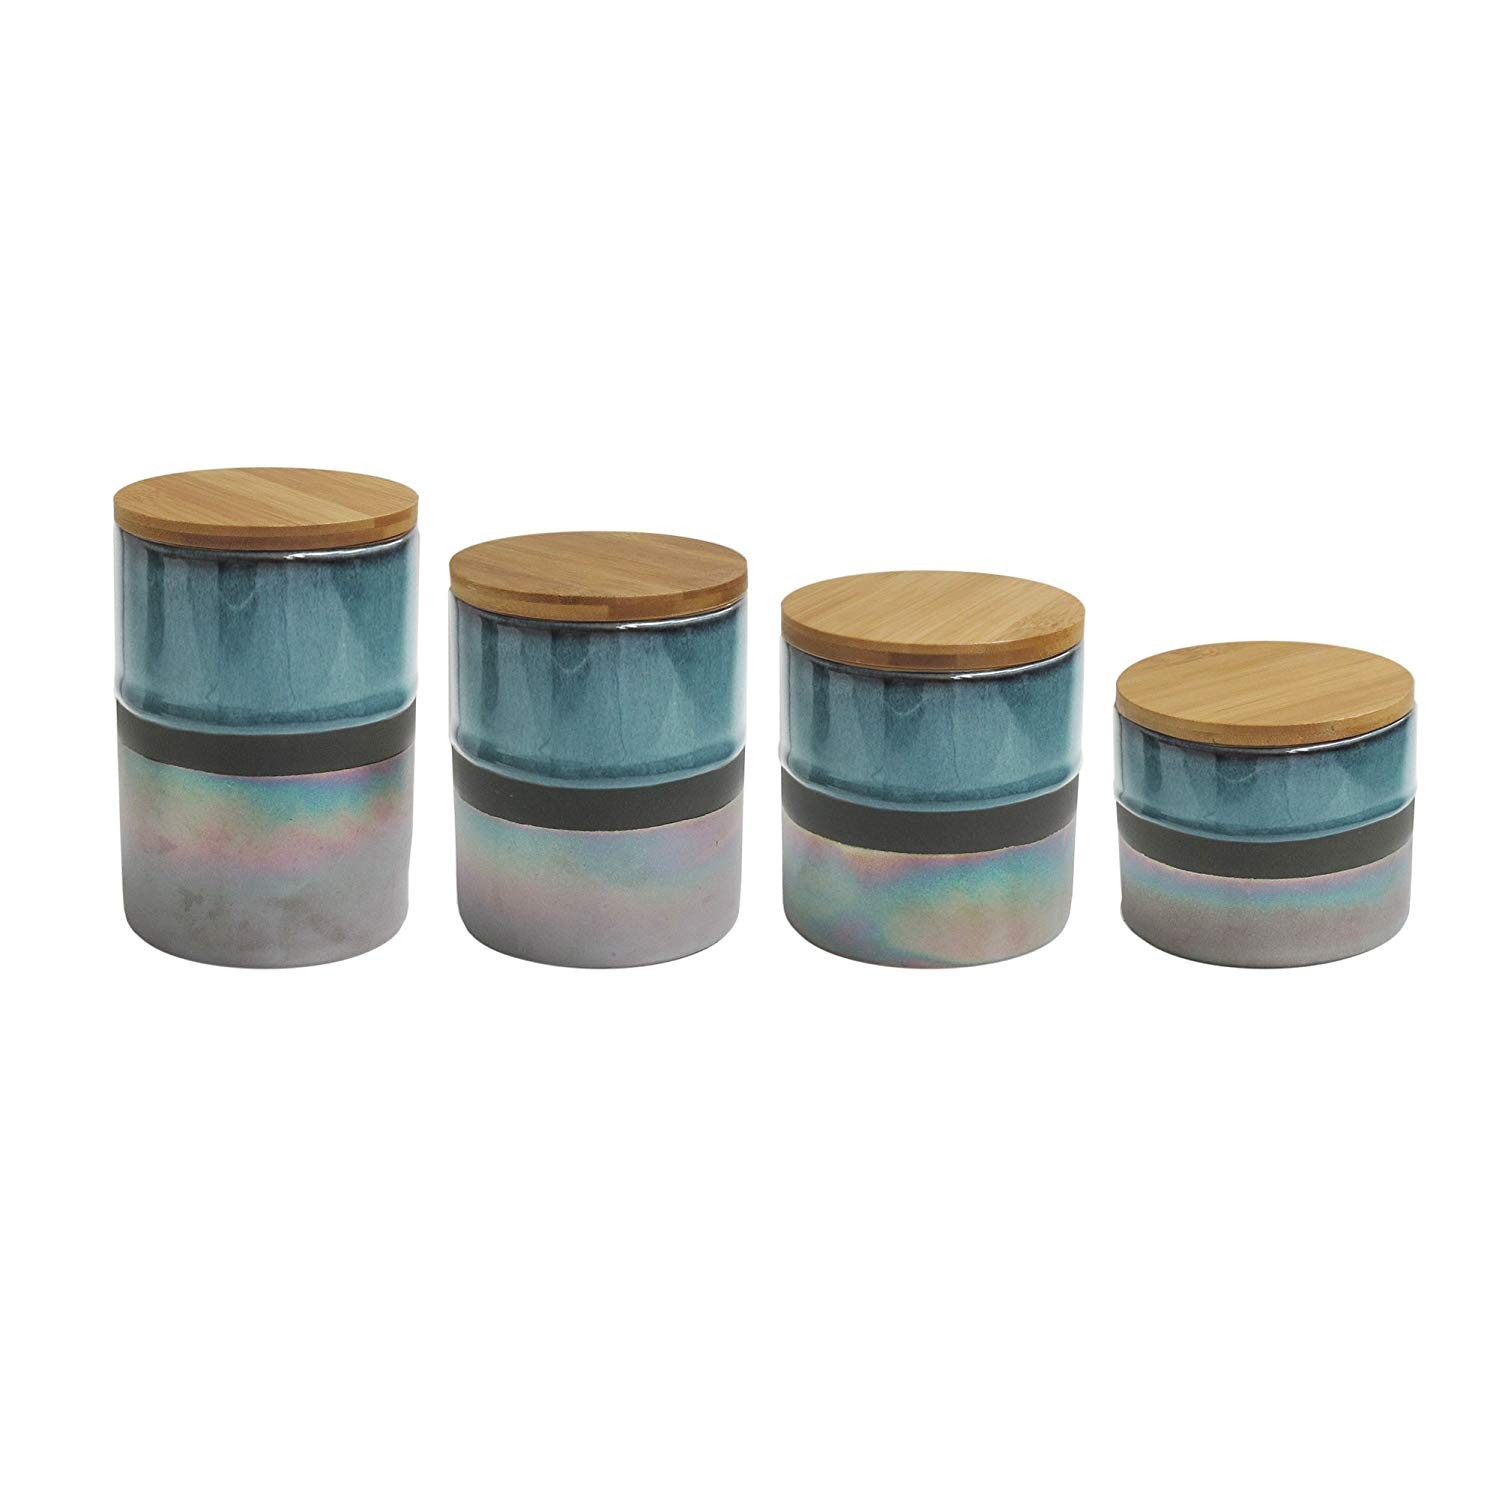 "American Atelier 7016-CAN-RB 4 Piece Abingdon Canister Set, 17"" x 4.2"" x 8"", Green/Silver"